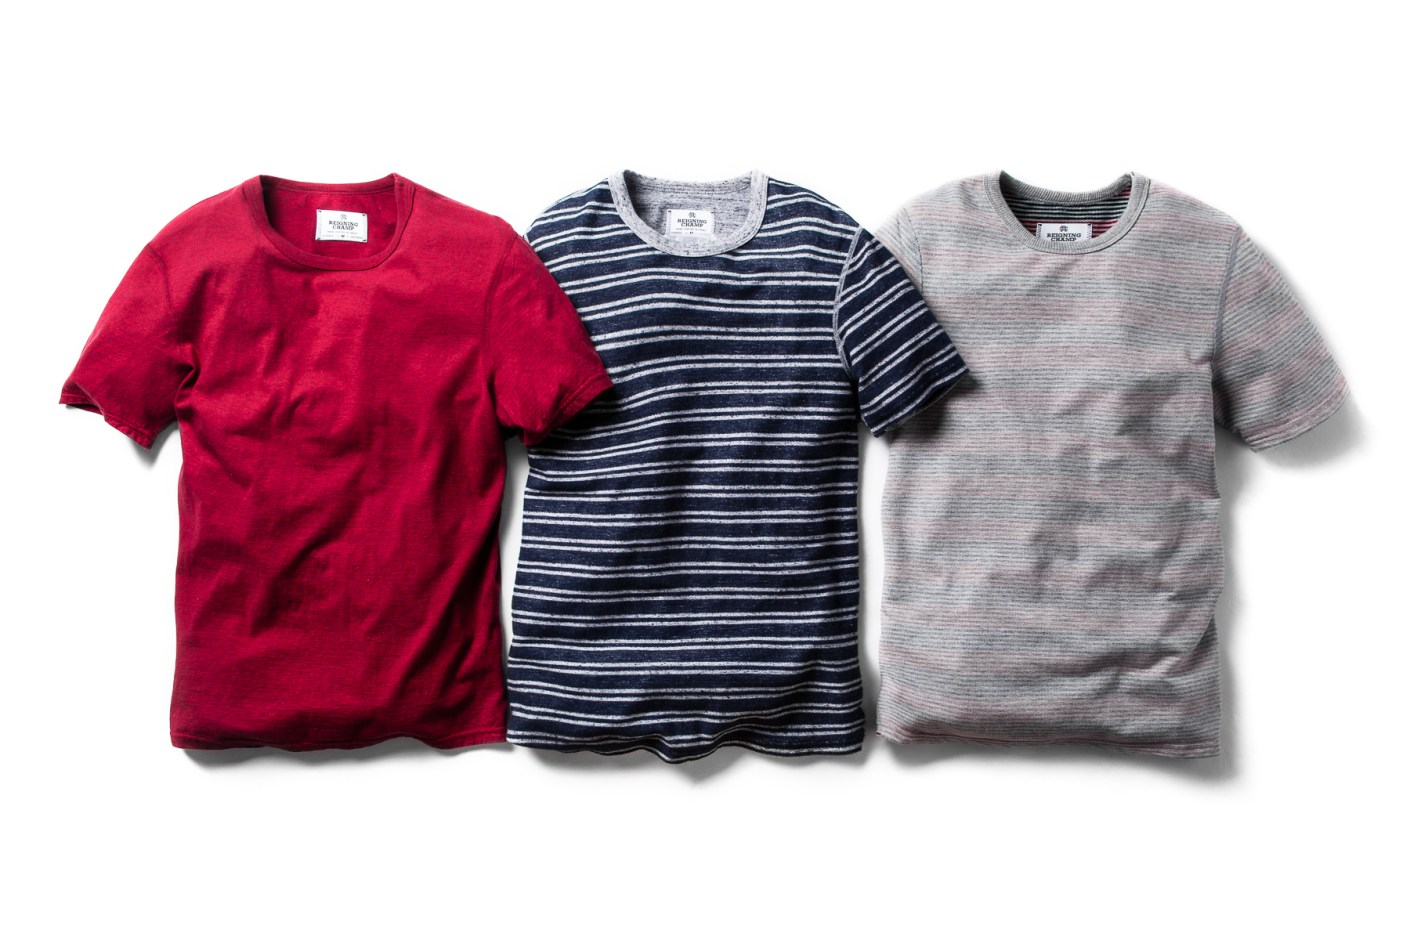 Image of Reigning Champ 2014 Spring/Summer T-Shirts